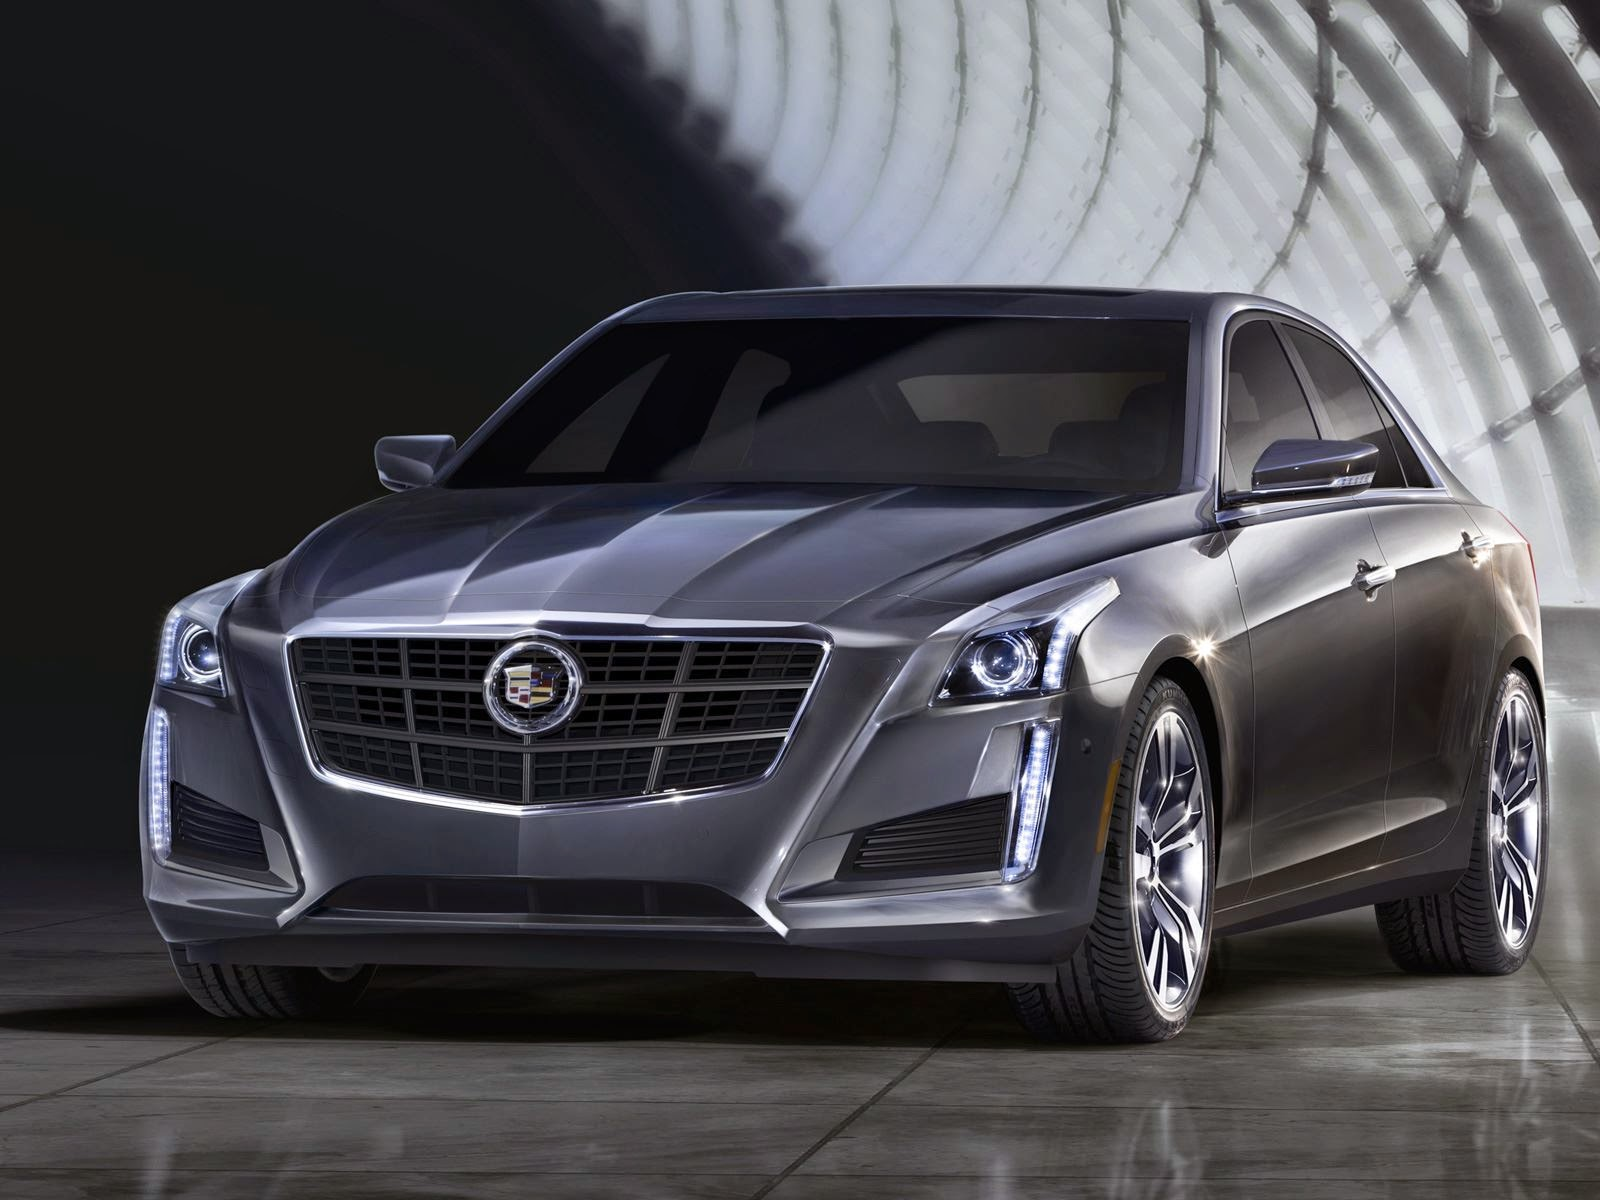 new car release dates 20162016 Cadillac XT5 Release Date  New Car Release Dates Images and